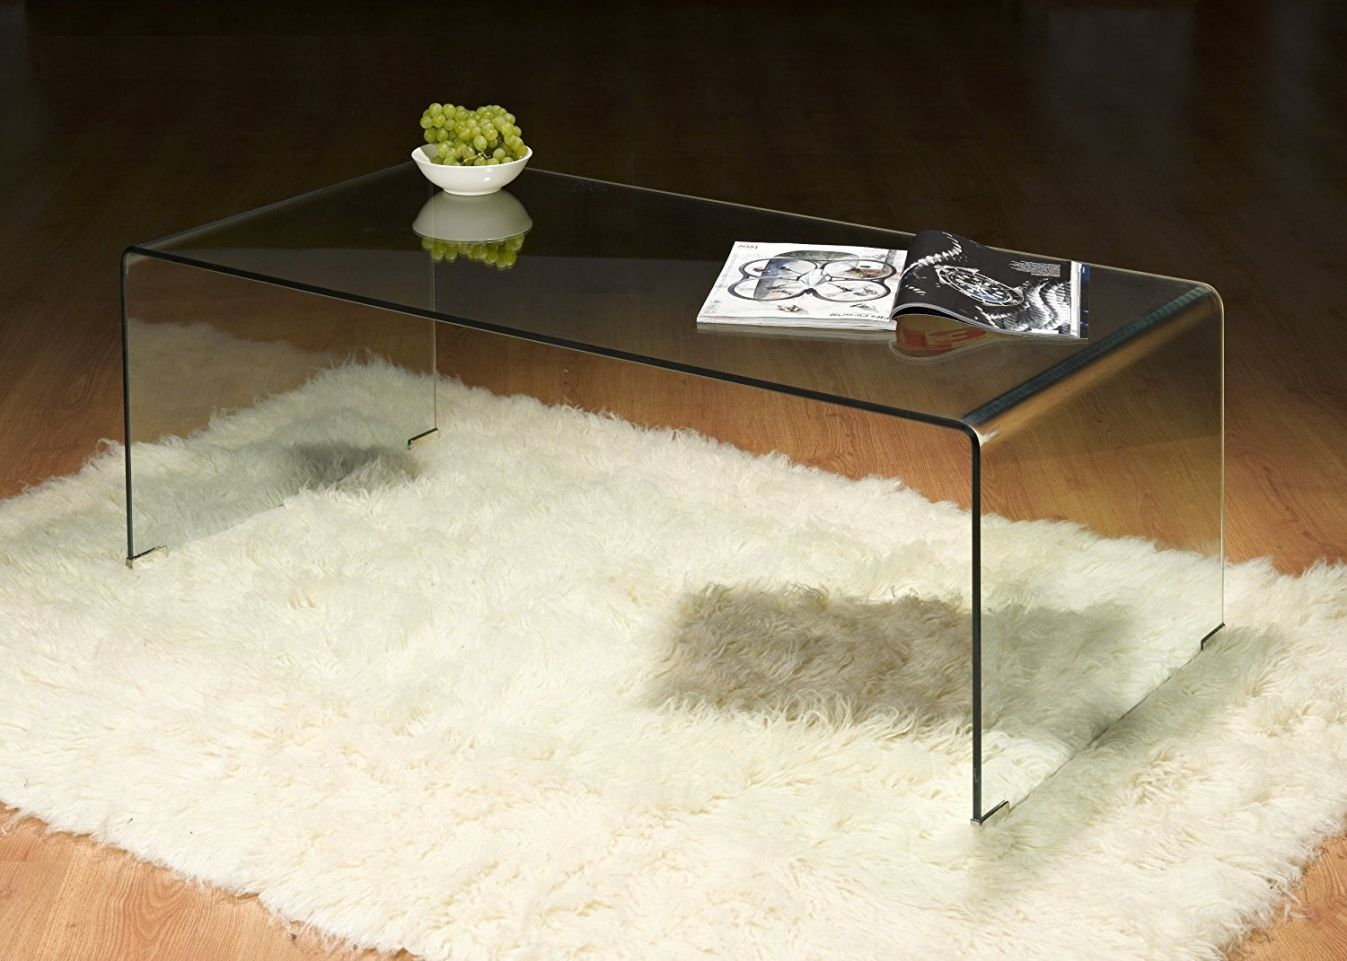 Glass coffee table in living room clear glass coffee table  modern european furniture check more at